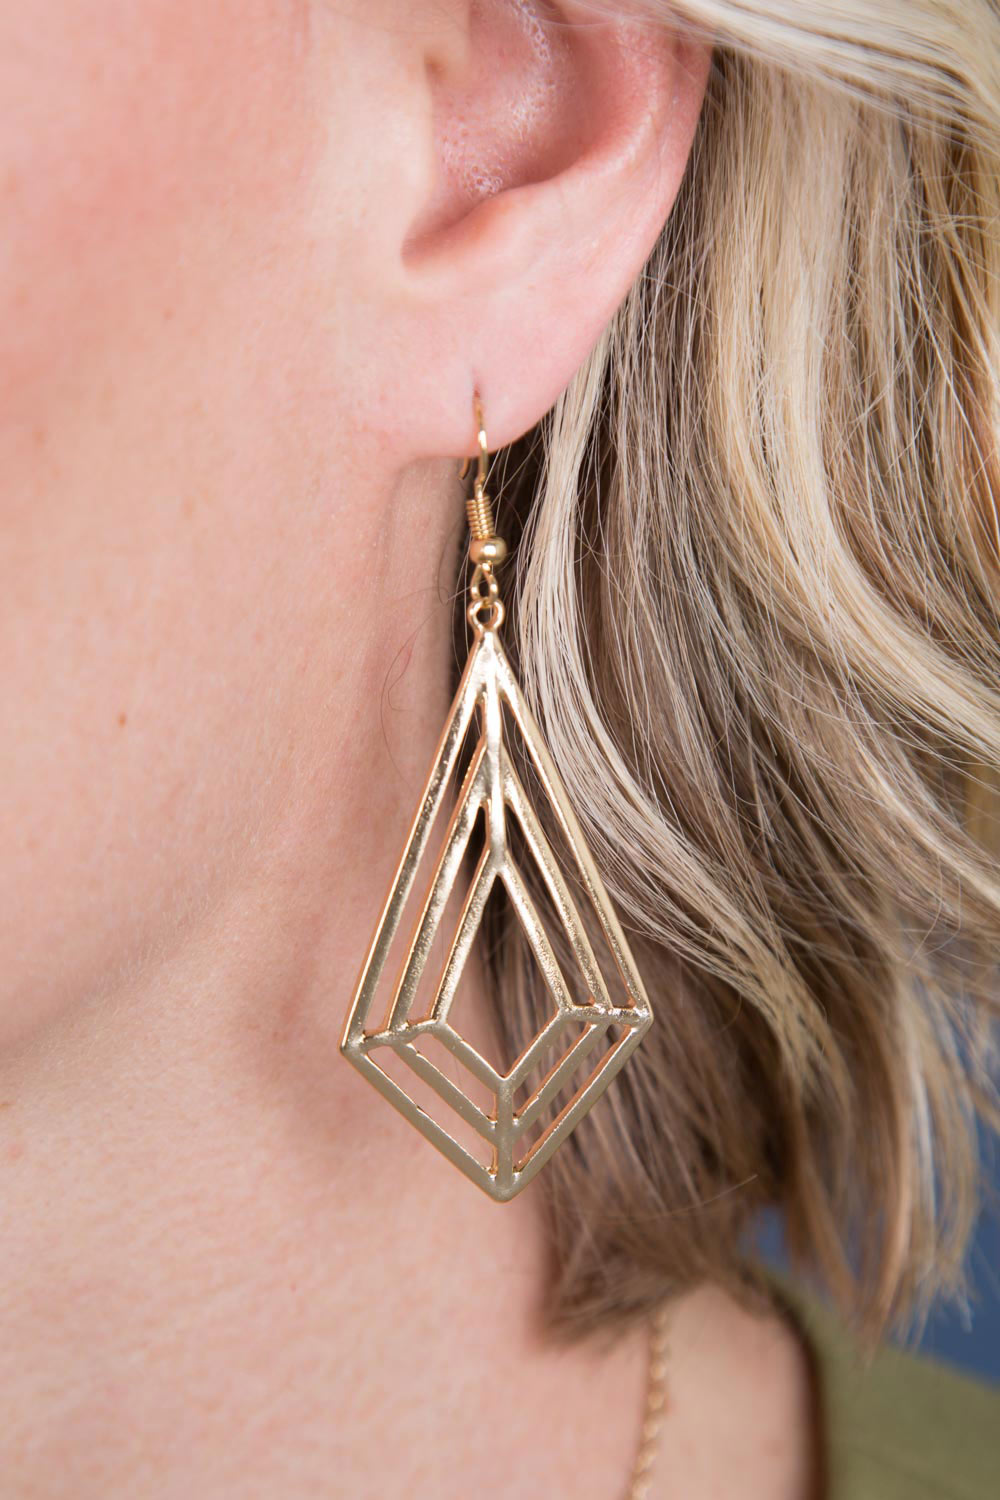 Type 3 Power Play Earrings